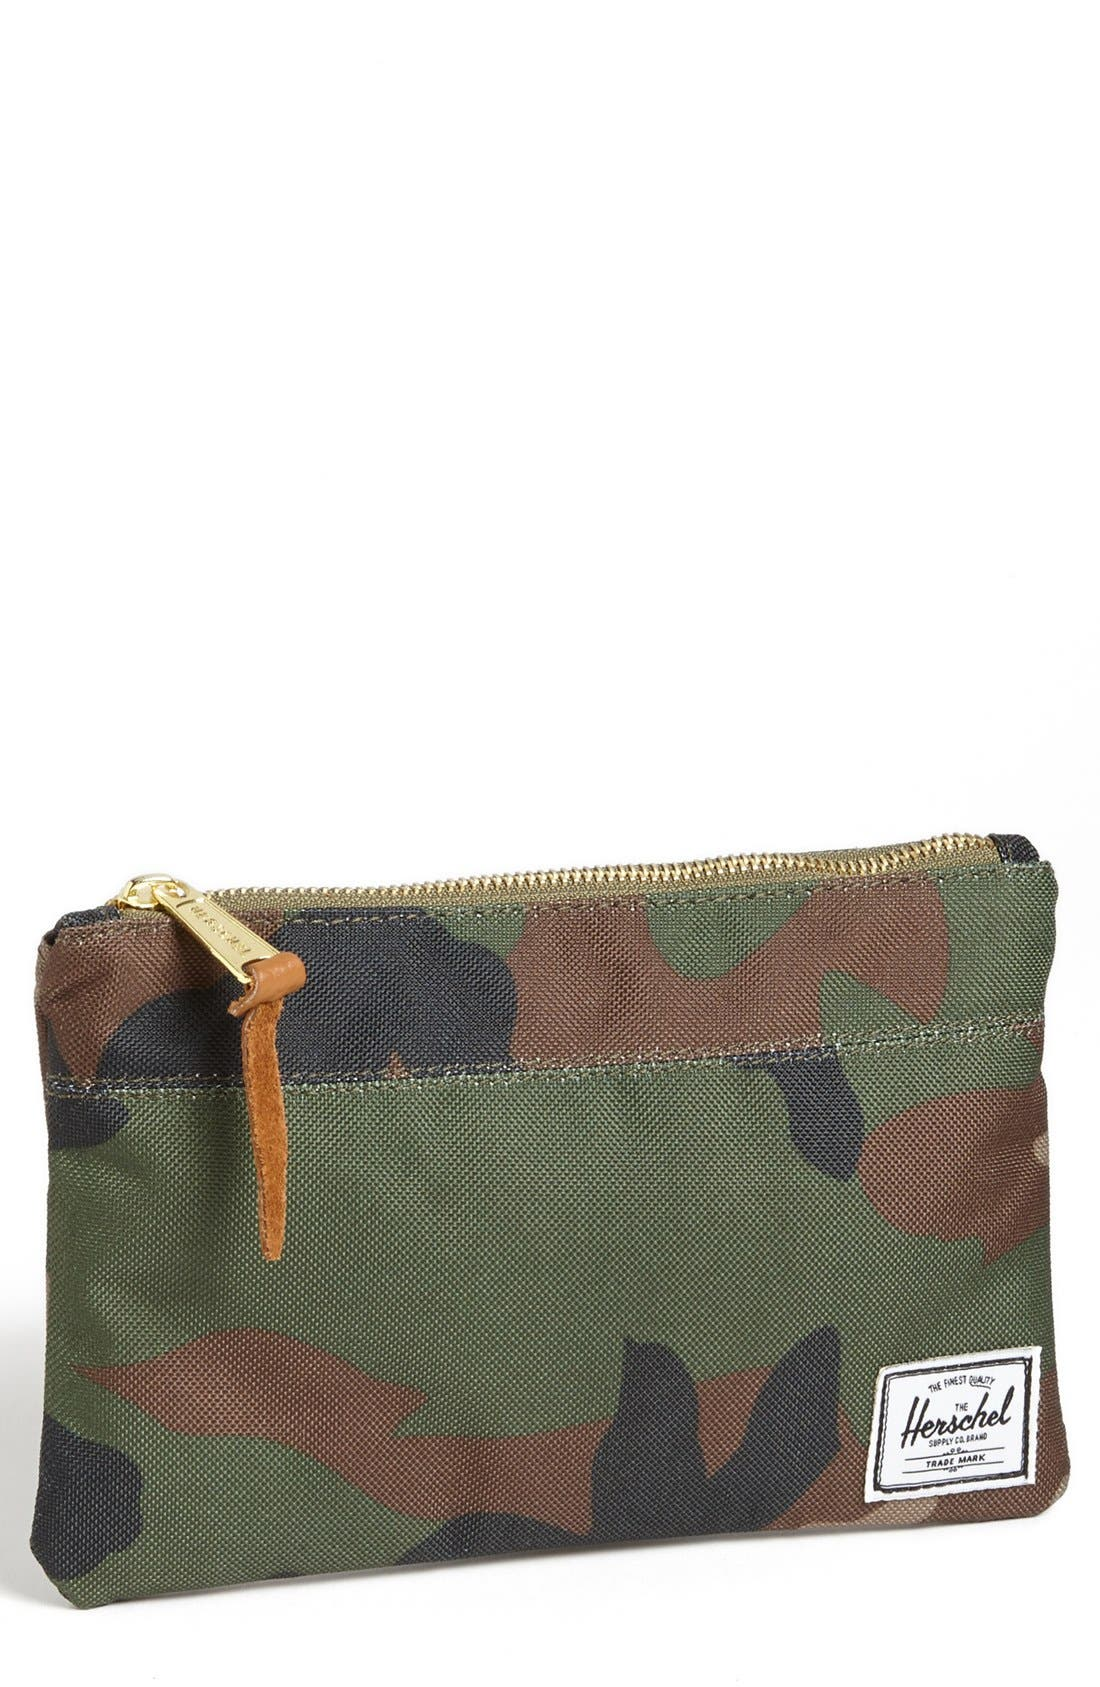 Main Image - Herschel Supply Co. Field Pouch